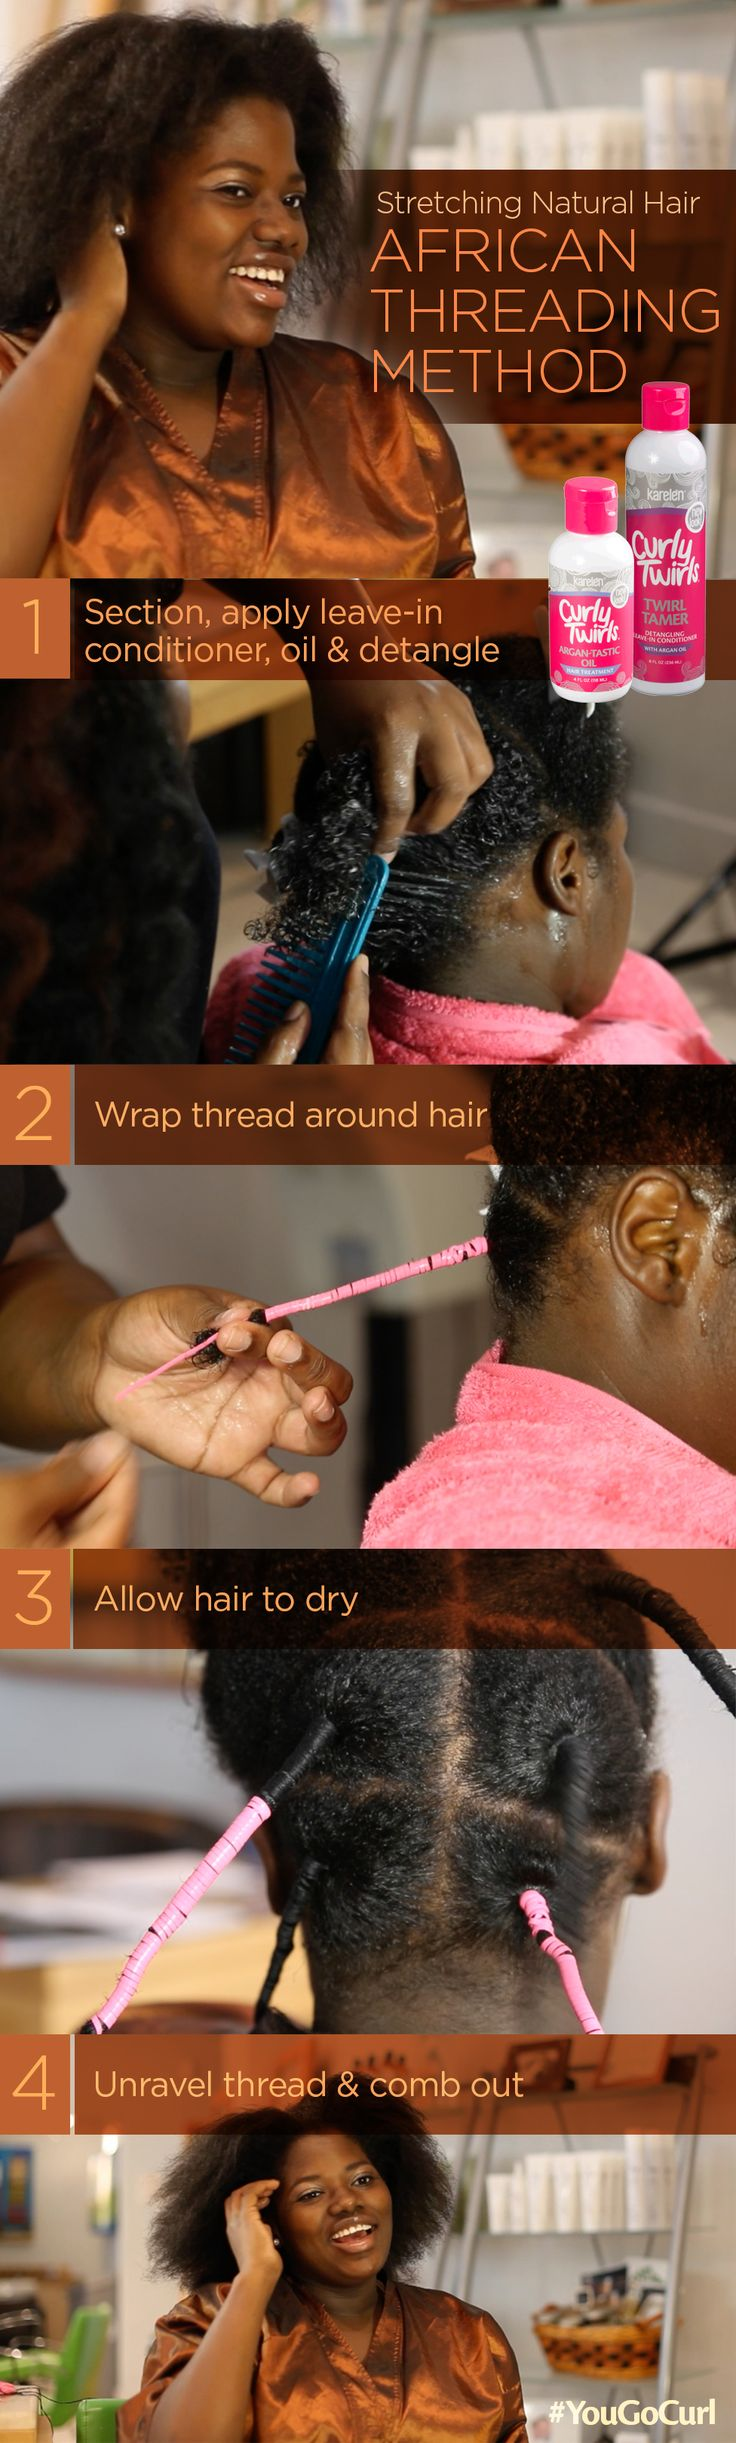 Stretching Natural Hair | African Threading Method